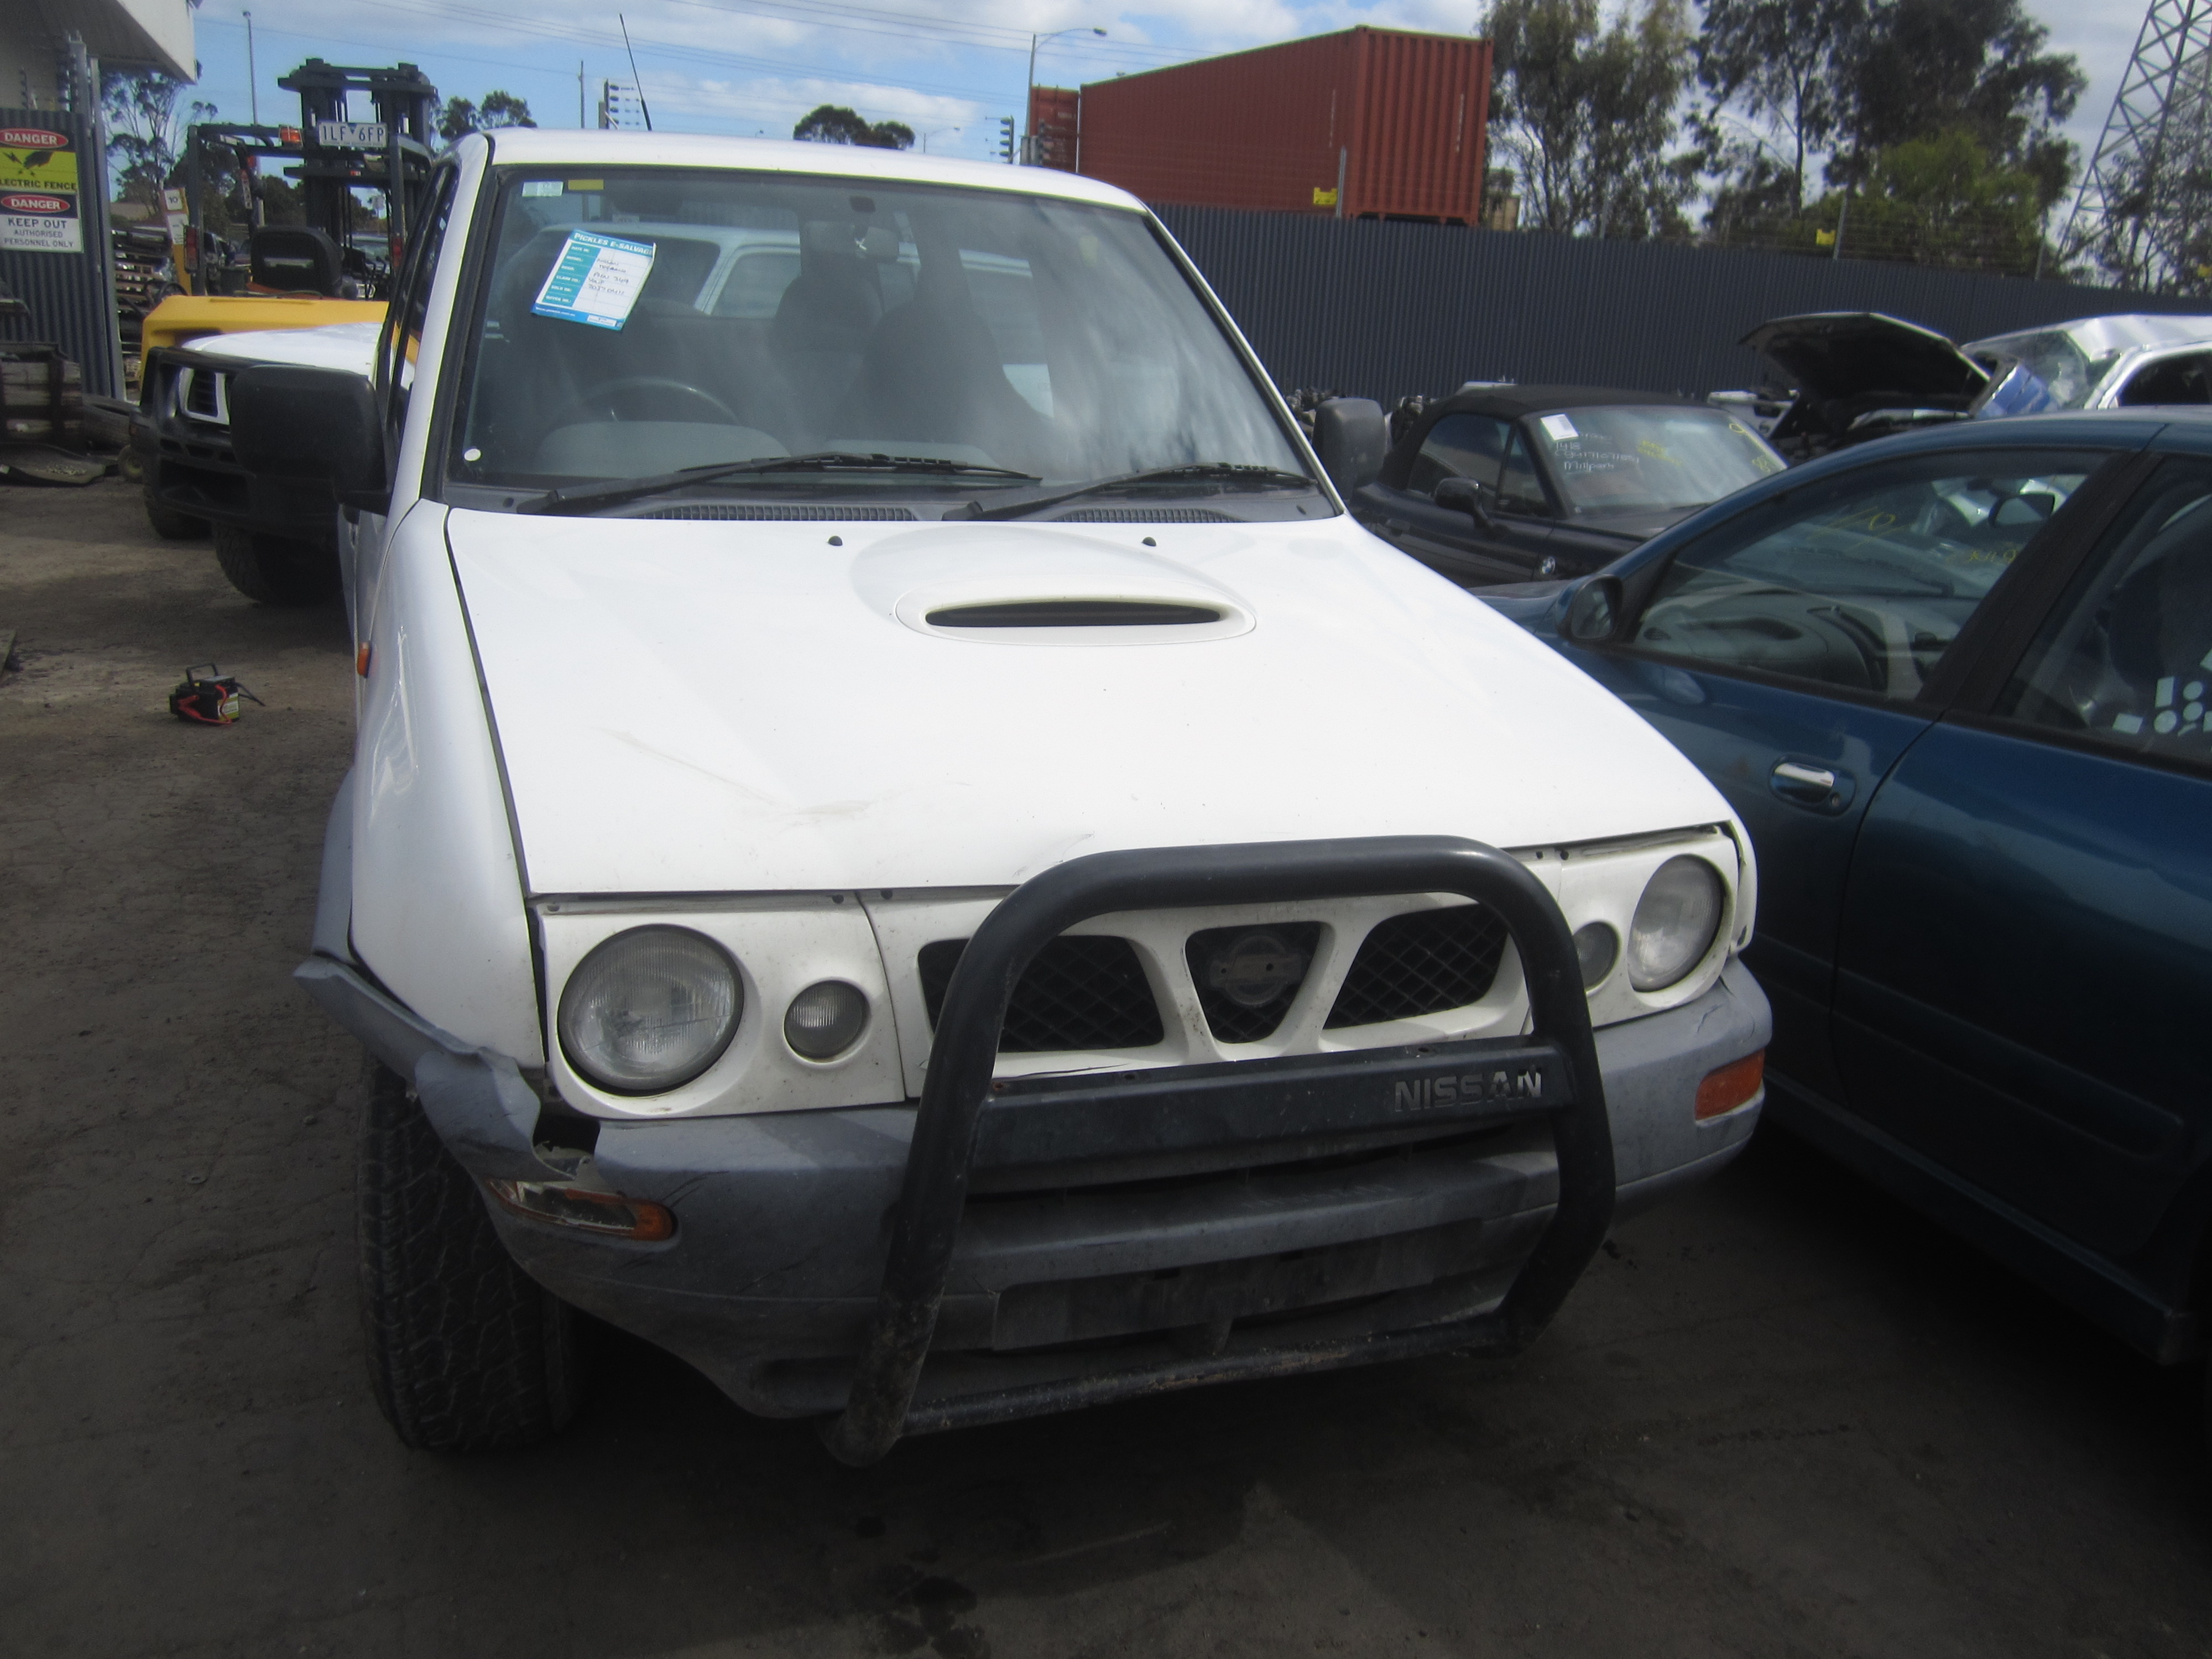 Nissan Terrano Parts Shipped Anywhere In Australia Niss4x4 Autospares 1997 Pathfinder Ignition Switch Wiring 1991 2 R20 Td27 Turbo Diesel 1999 Wrecking